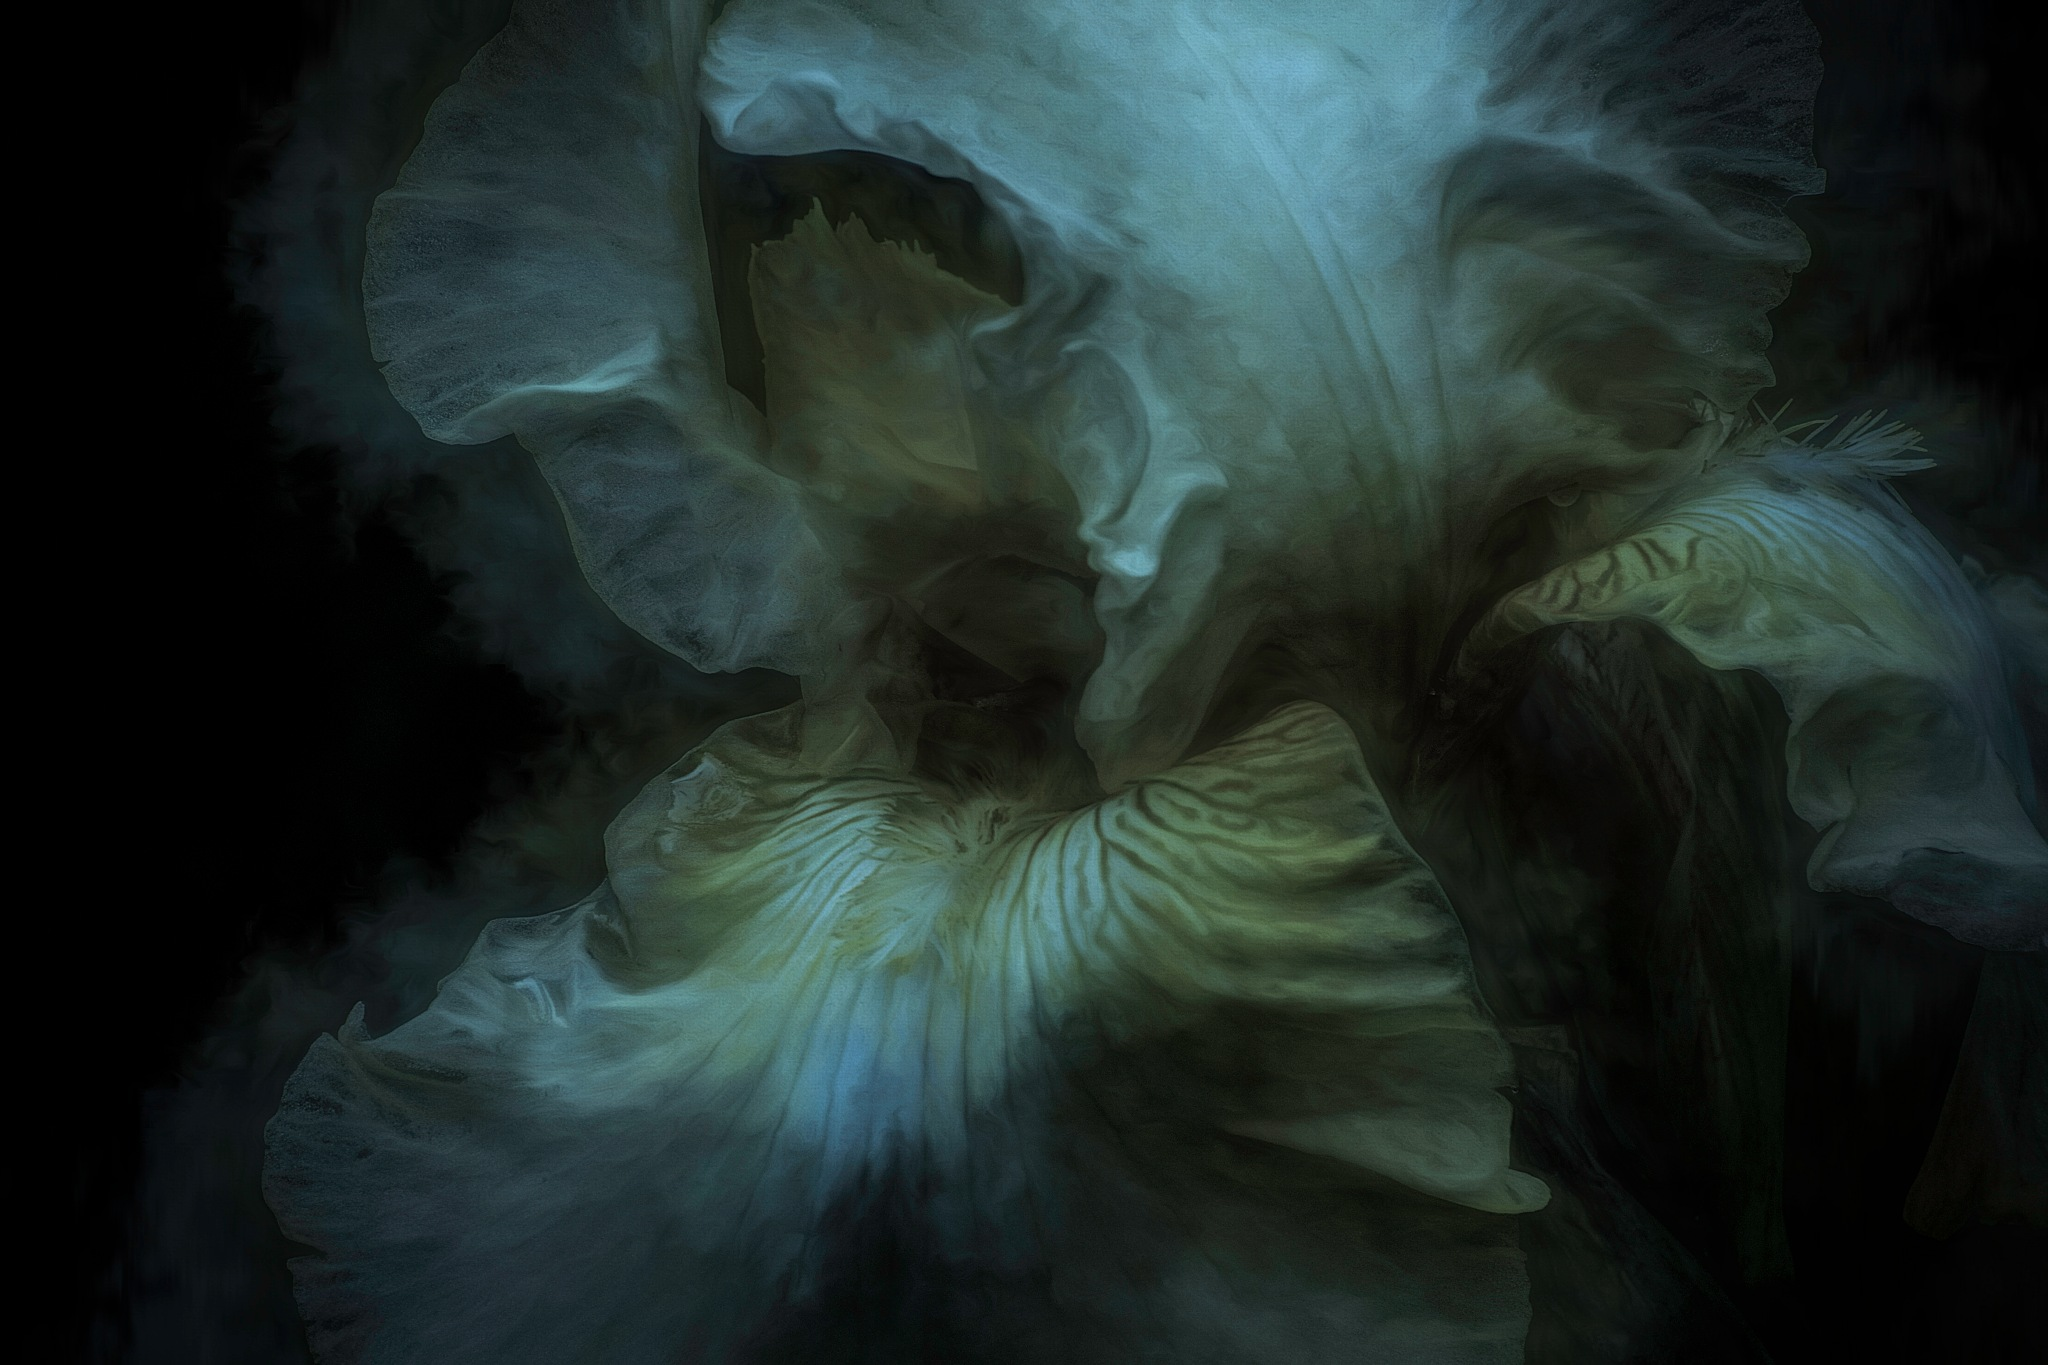 Late Iris 12 by JohnEllingson